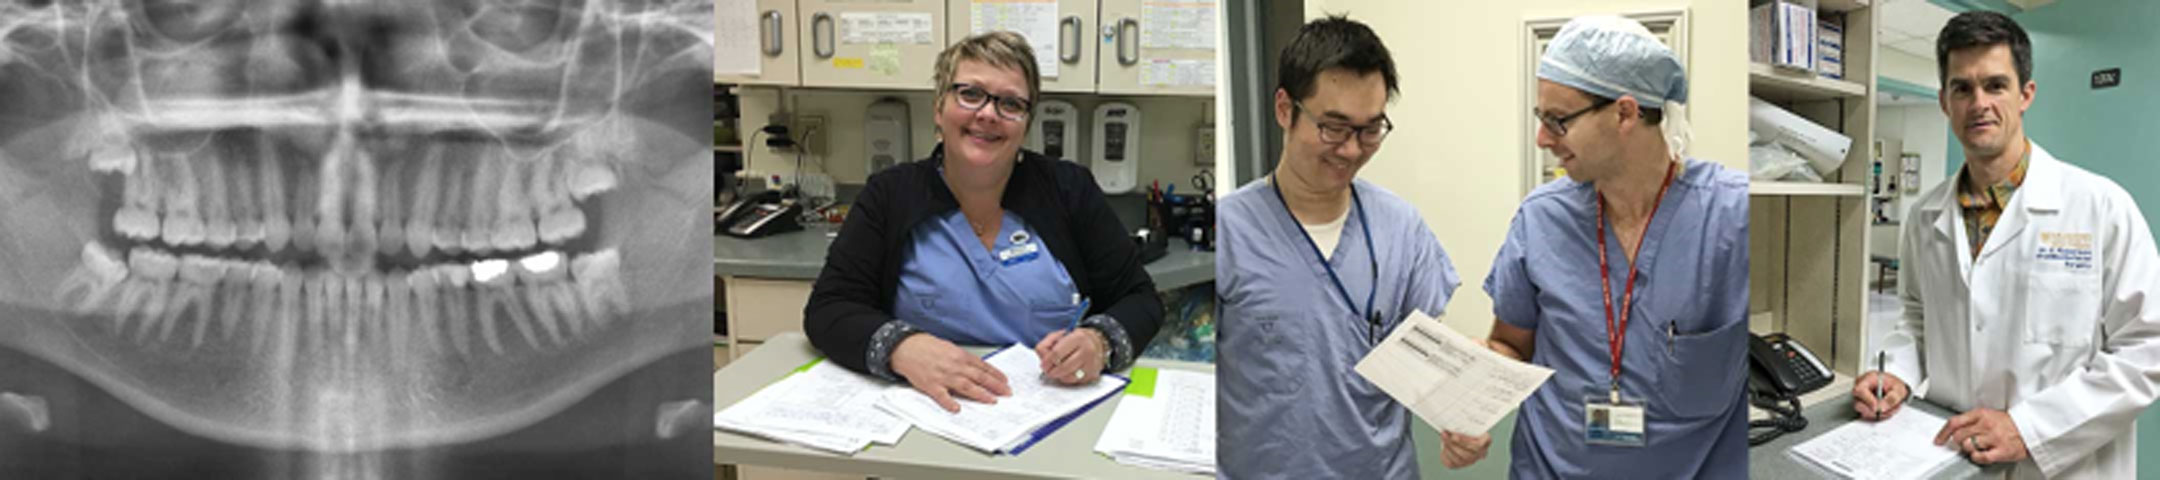 A stack of images showing dental workers during the day.